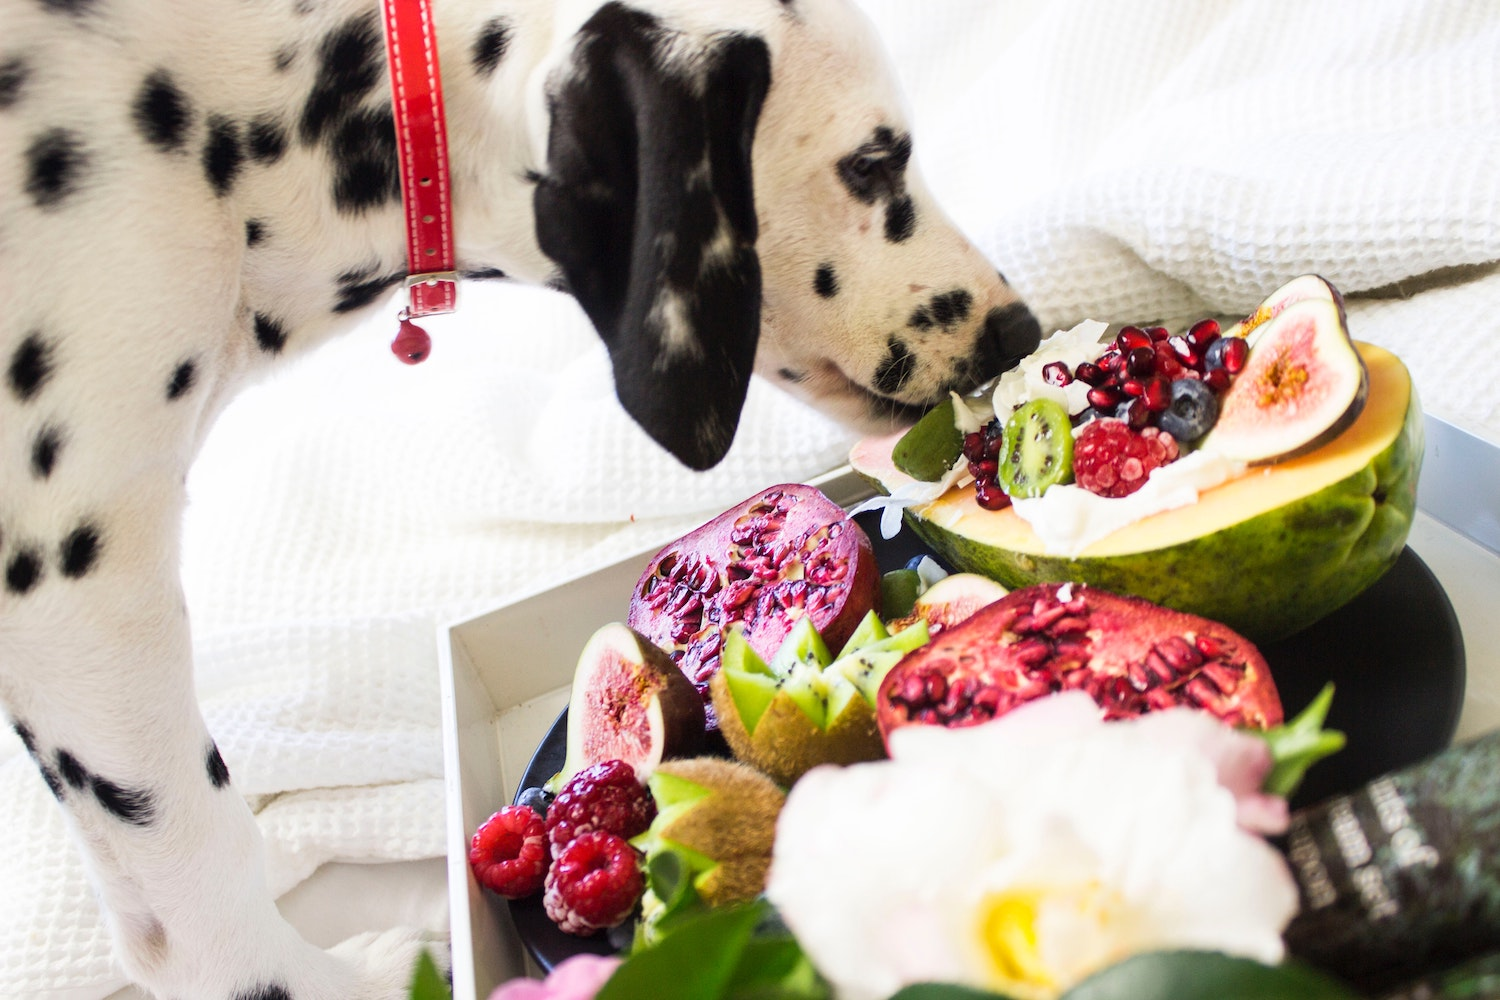 Healthy fruit and vegetables for your dog